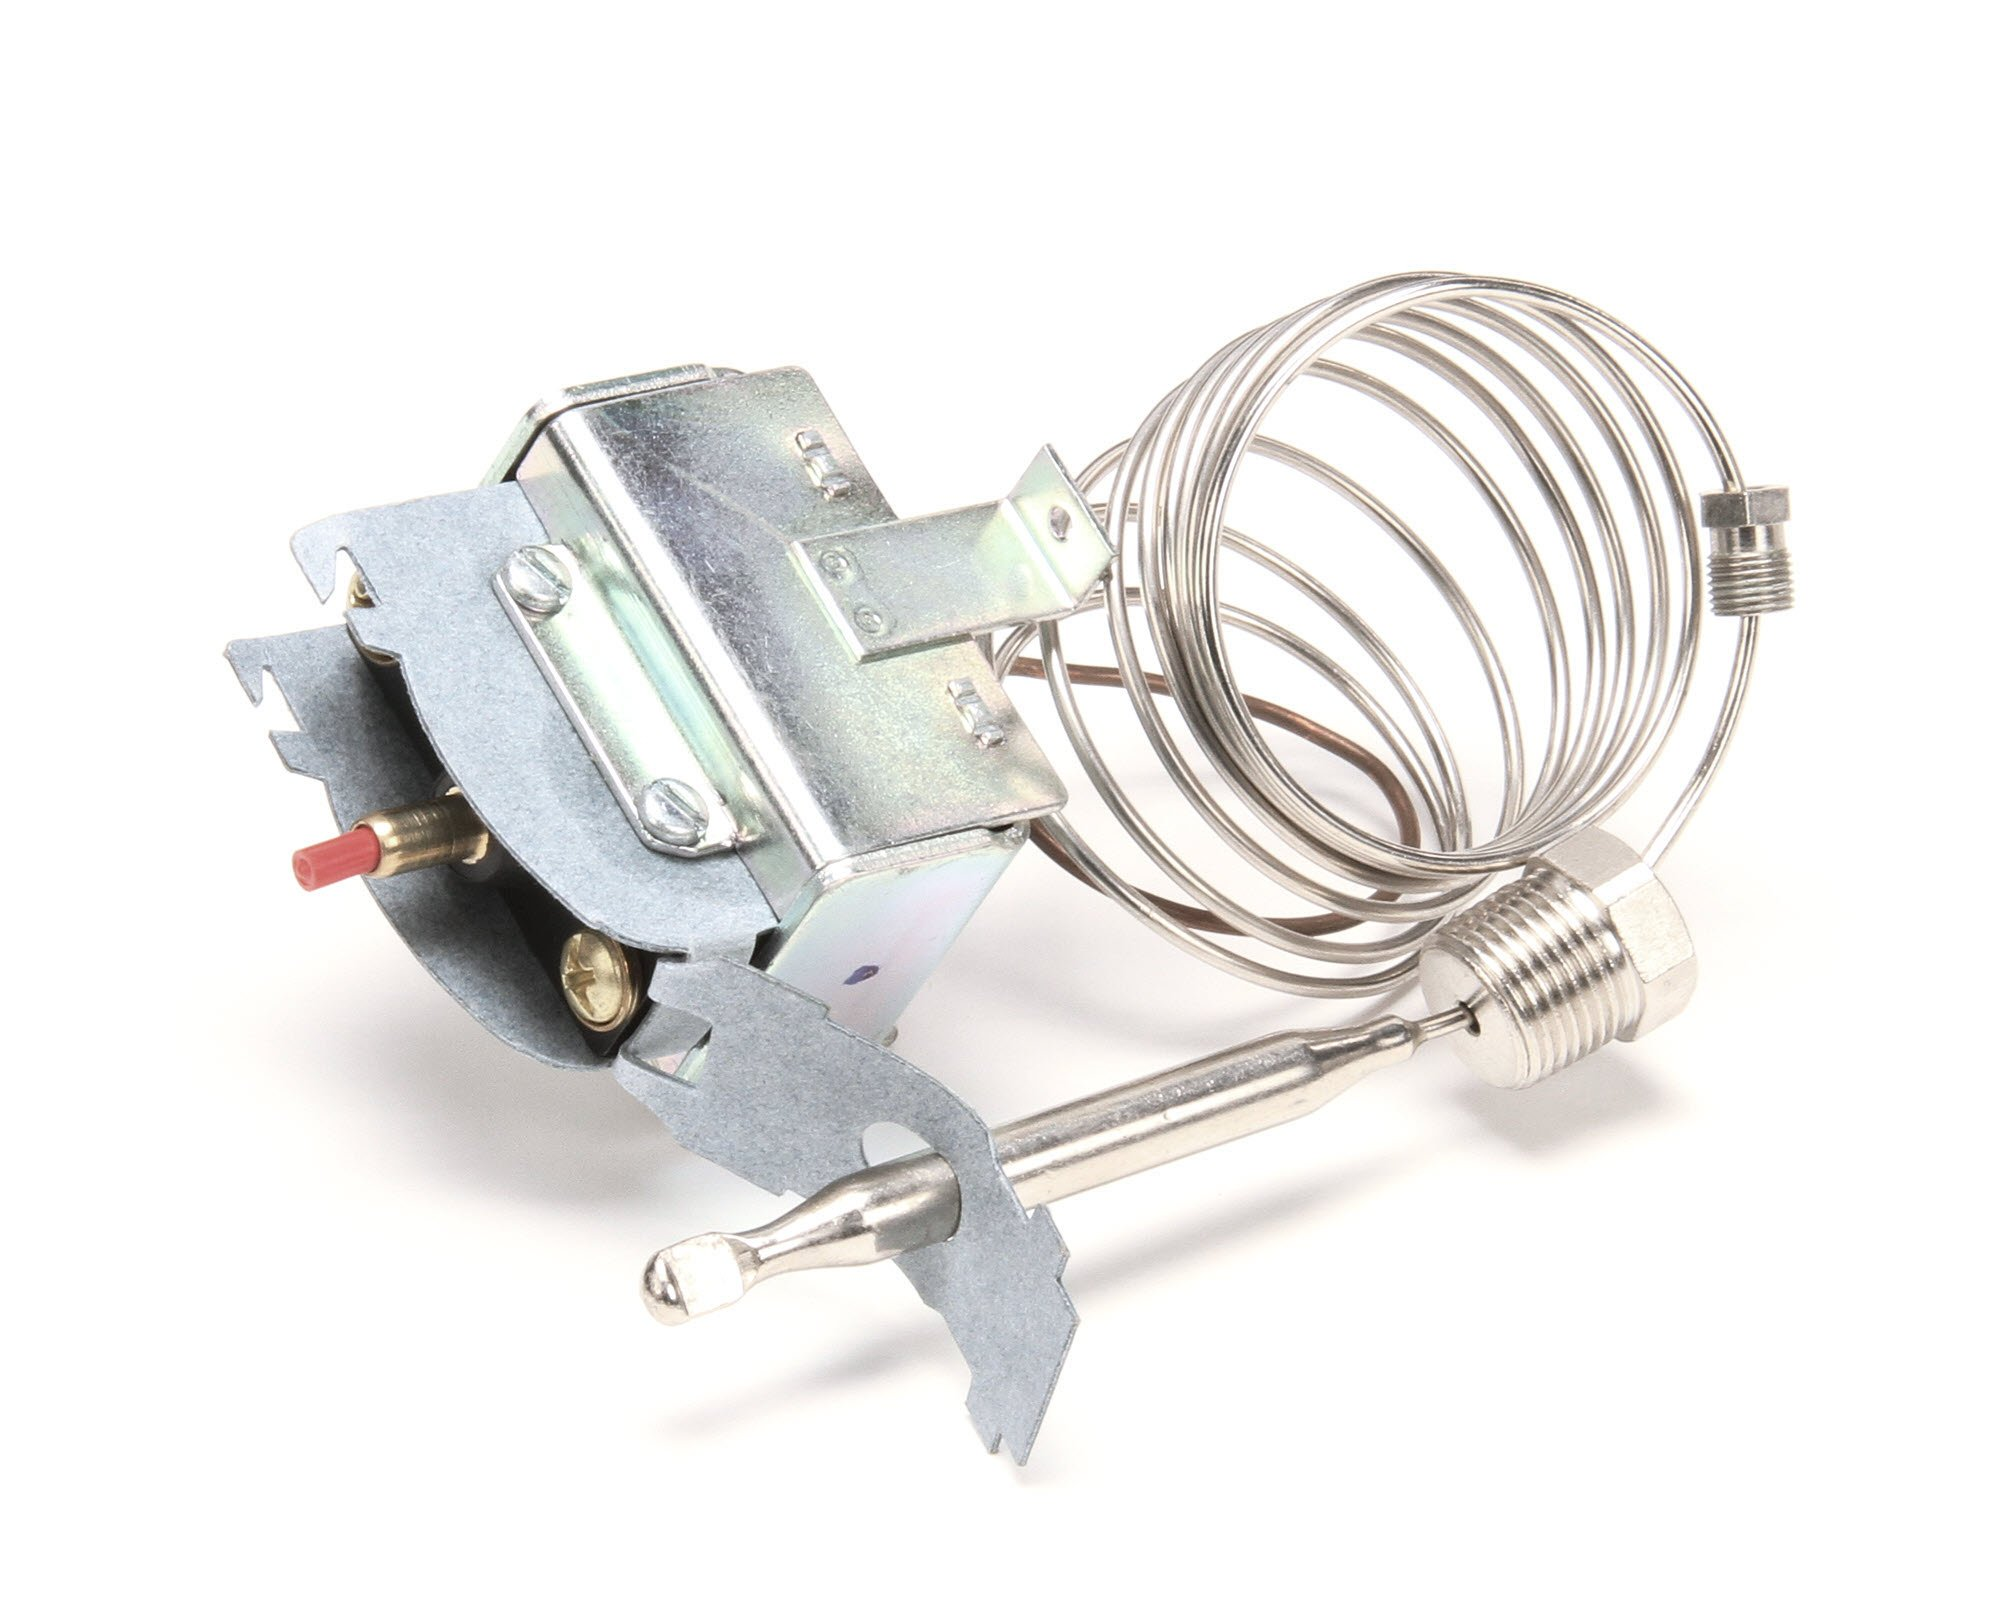 Imperial 36942 High Limit Switch Manual, Ifs40E